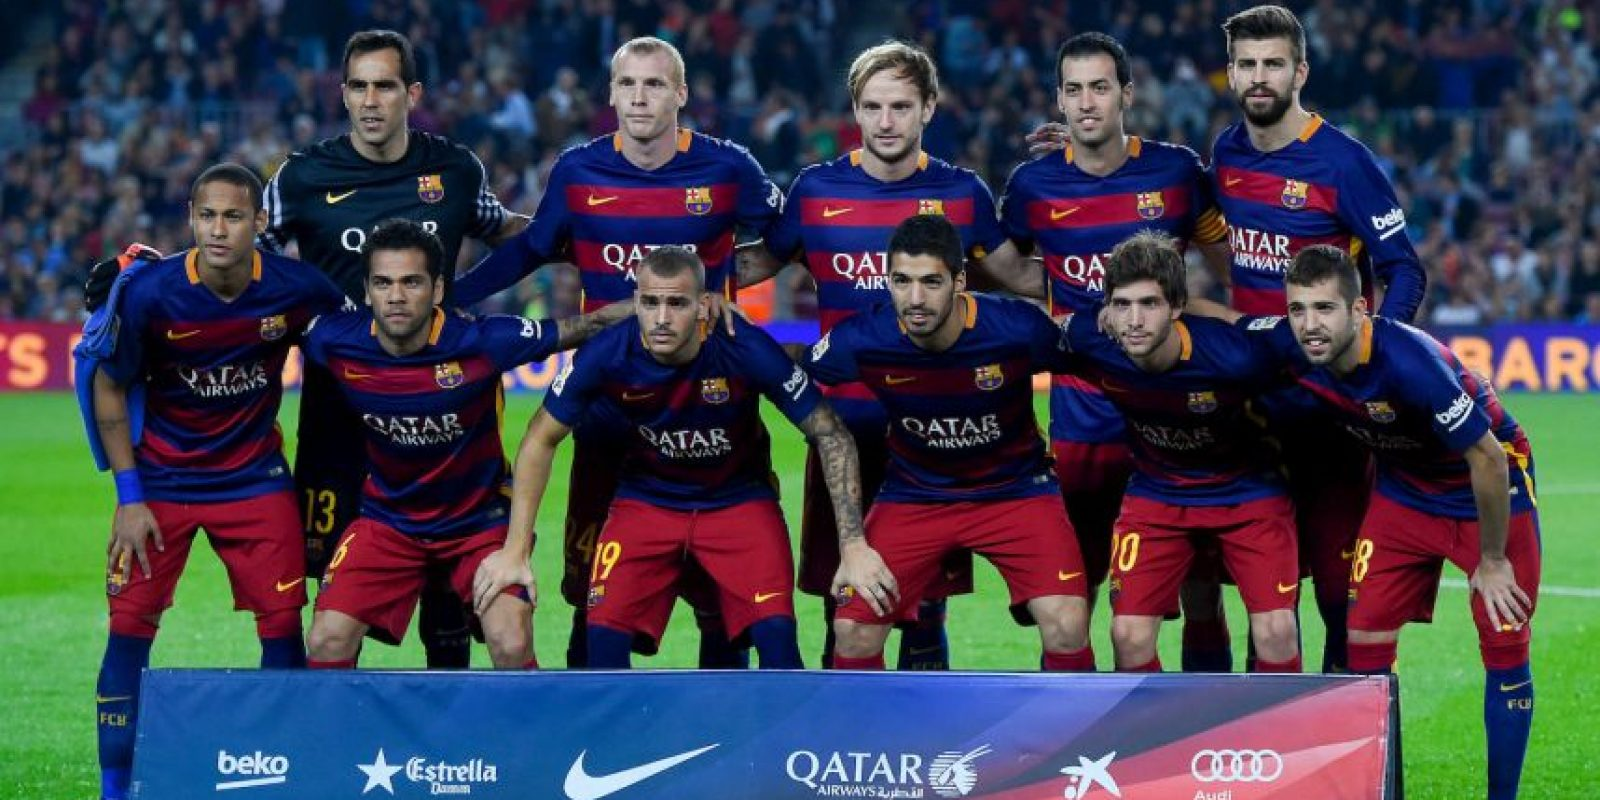 LIGA BBVA: Barcelona (3) vs. Eibar (5) en el Camp Nou Foto: Getty Images